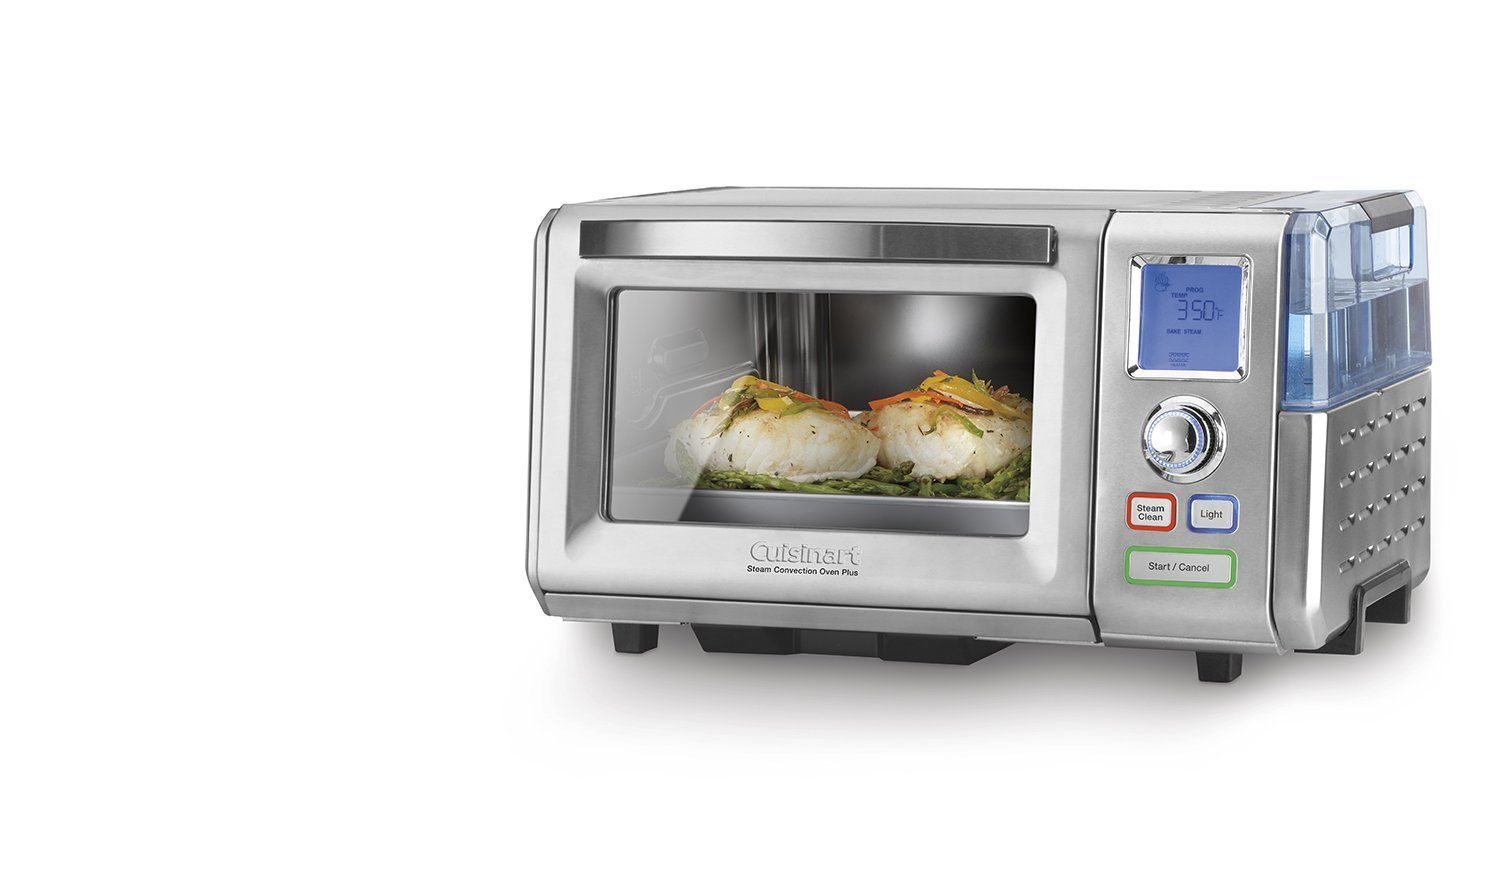 Cuisinart Steam Convection Oven Stainless Steel You Can Get